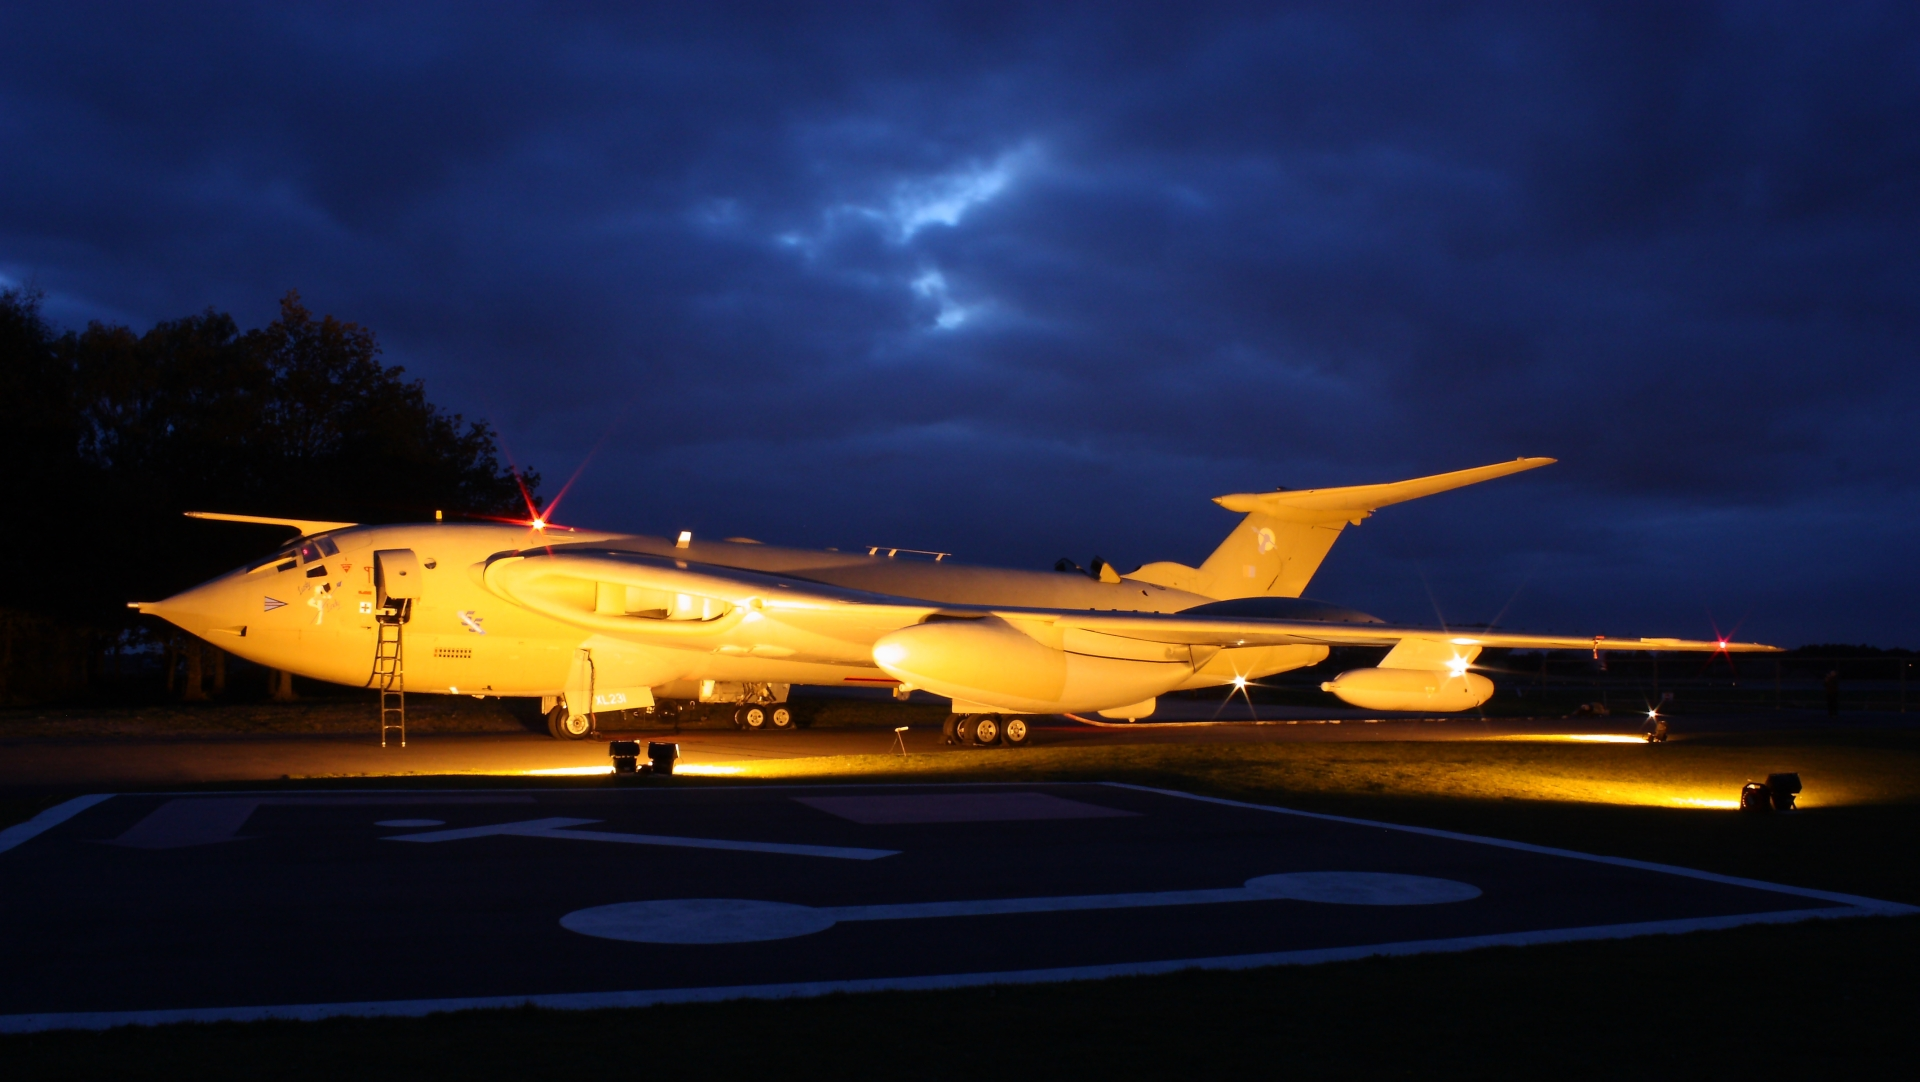 Handley Page Victor Full HD Wallpaper And Background Image